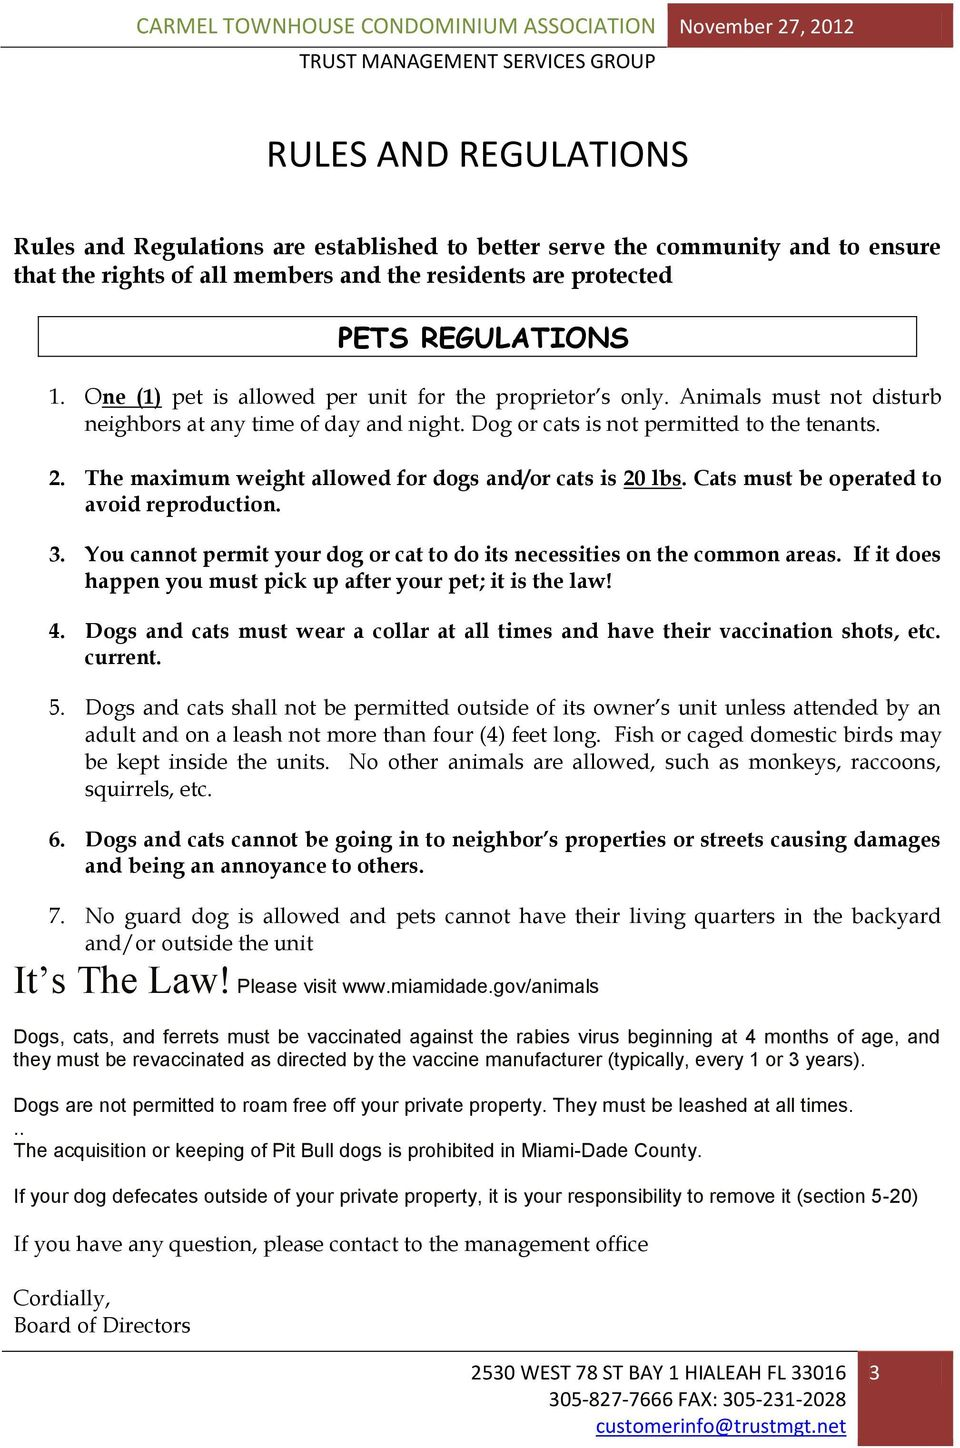 The maximum weight allowed for dogs and/or cats is 20 lbs. Cats must be operated to avoid reproduction. 3. You cannot permit your dog or cat to do its necessities on the common areas.